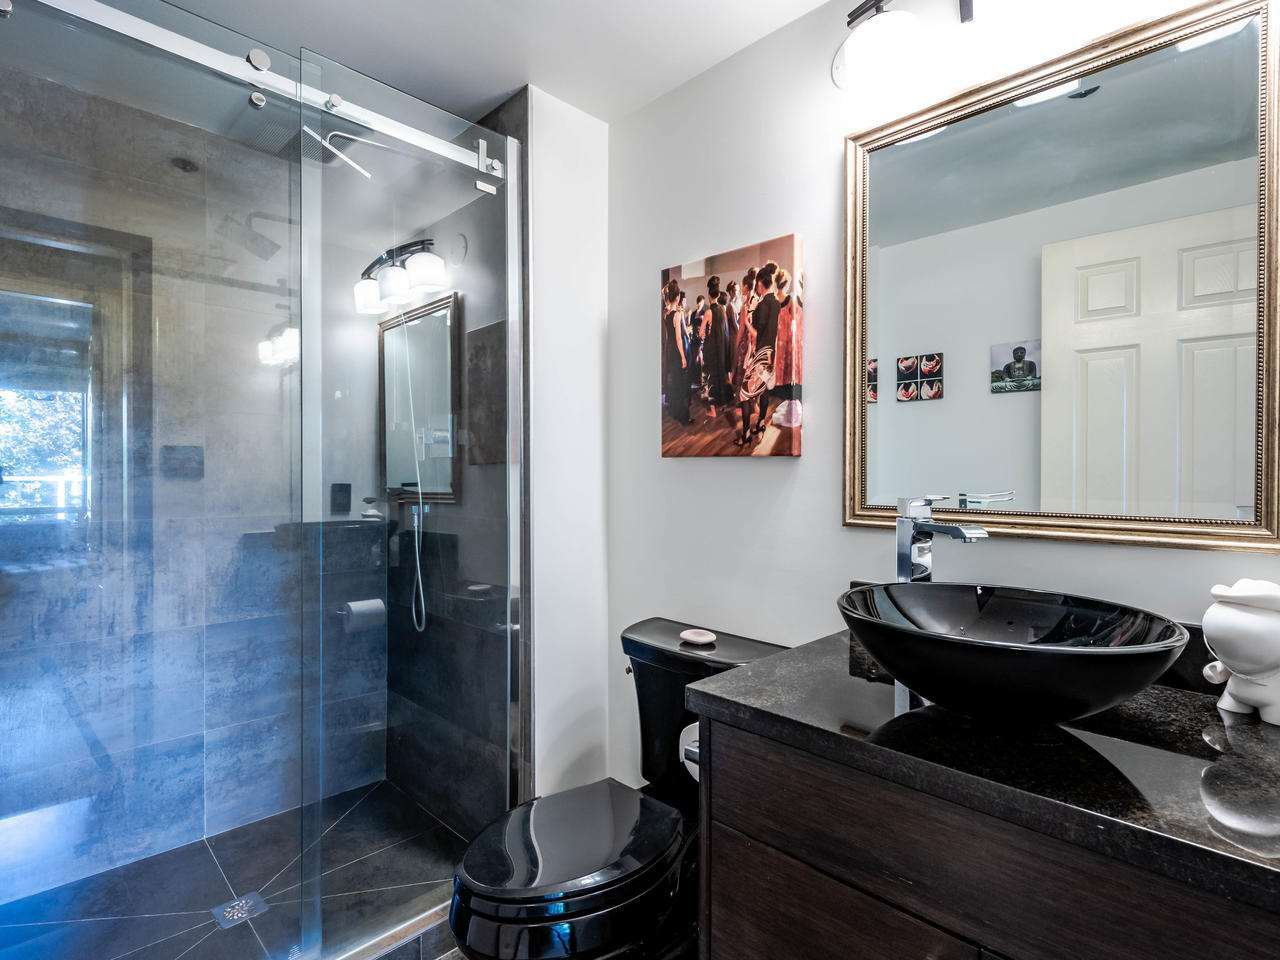 """Photo 32: Photos: 303 2288 W 12TH Avenue in Vancouver: Kitsilano Condo for sale in """"Connaught Point"""" (Vancouver West)  : MLS®# R2494985"""